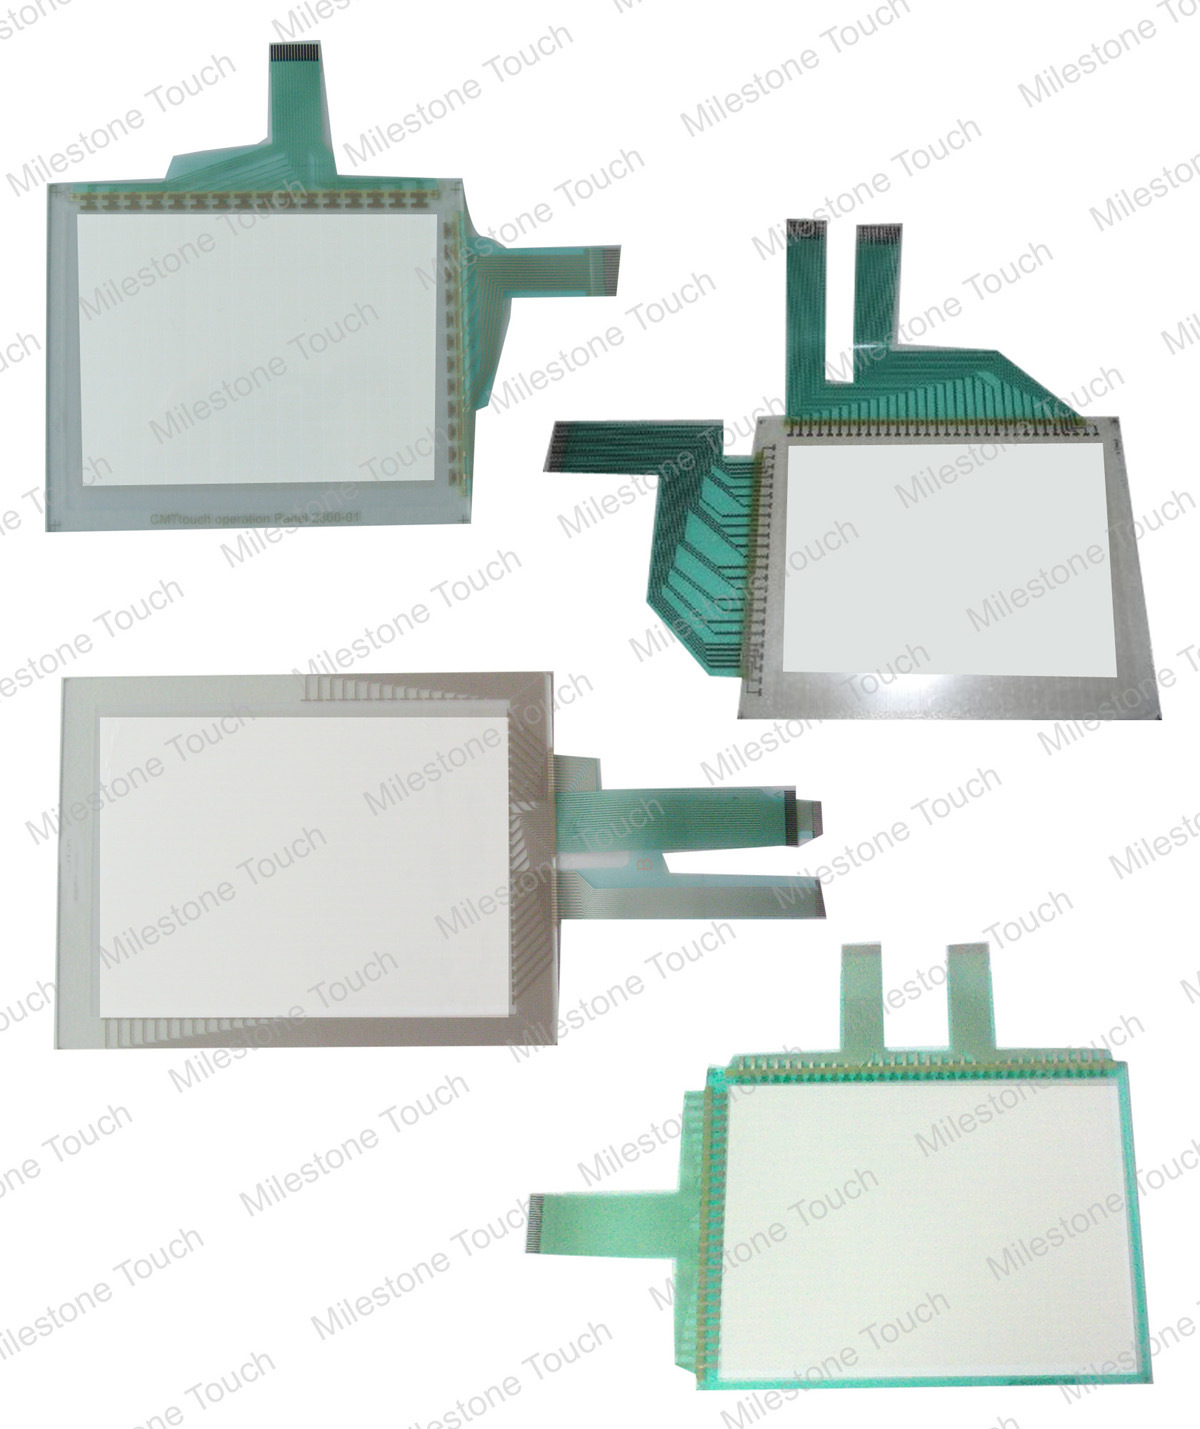 Pfxgp4501tadw / Pfxgp4501tma / Pfxgp4501tmd / Pfxgp4503tad Touch Screen Panel Membrane Glass for PRO-Face